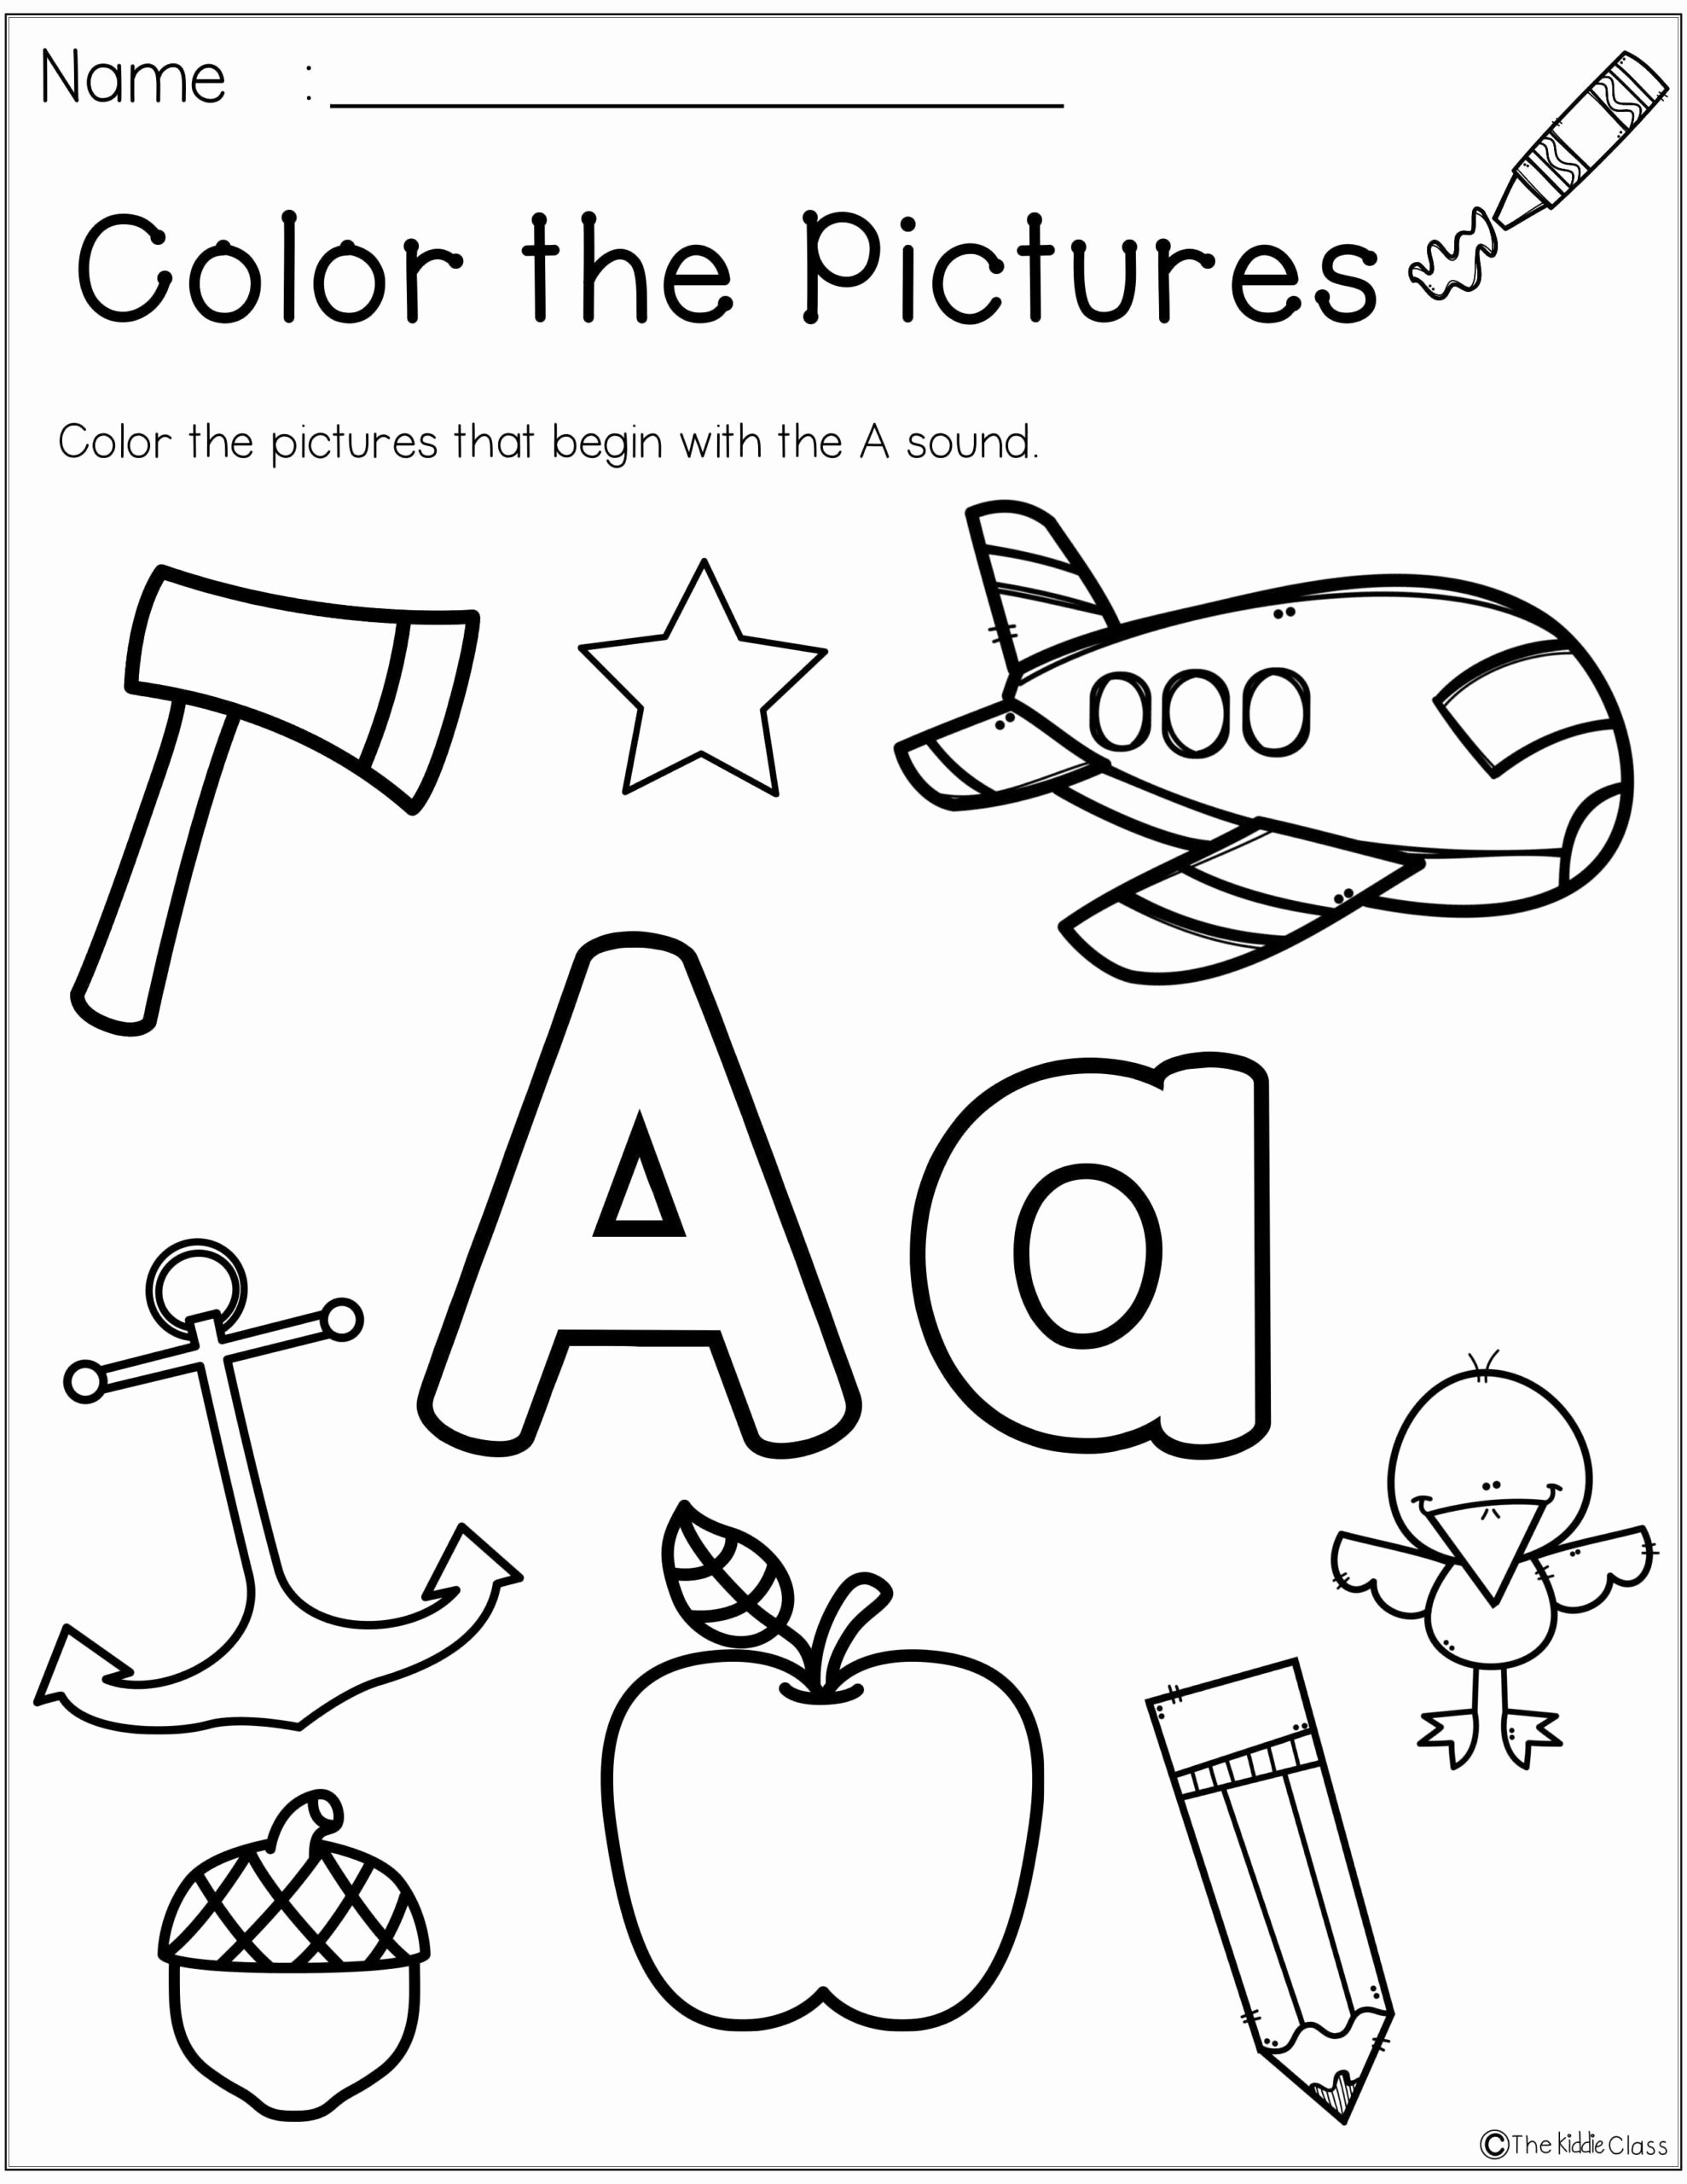 Free Printable English Worksheets for Preschoolers Kids Worksheets Preschool Spelling Worksheets Worksheet Train